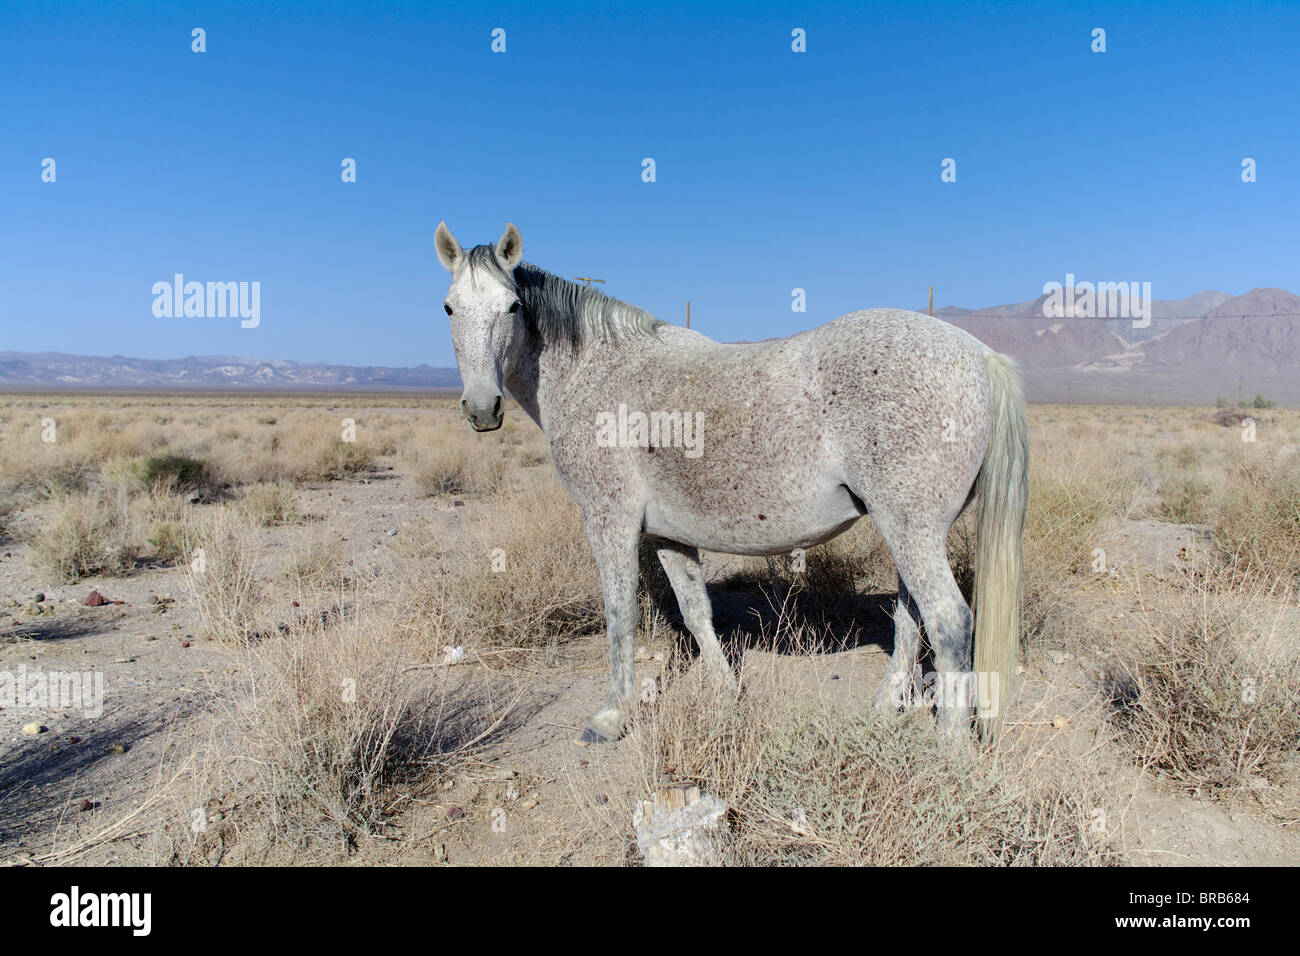 Wild horse near Death Valley Junction in Death Valley National Park, California, USA. - Stock Image